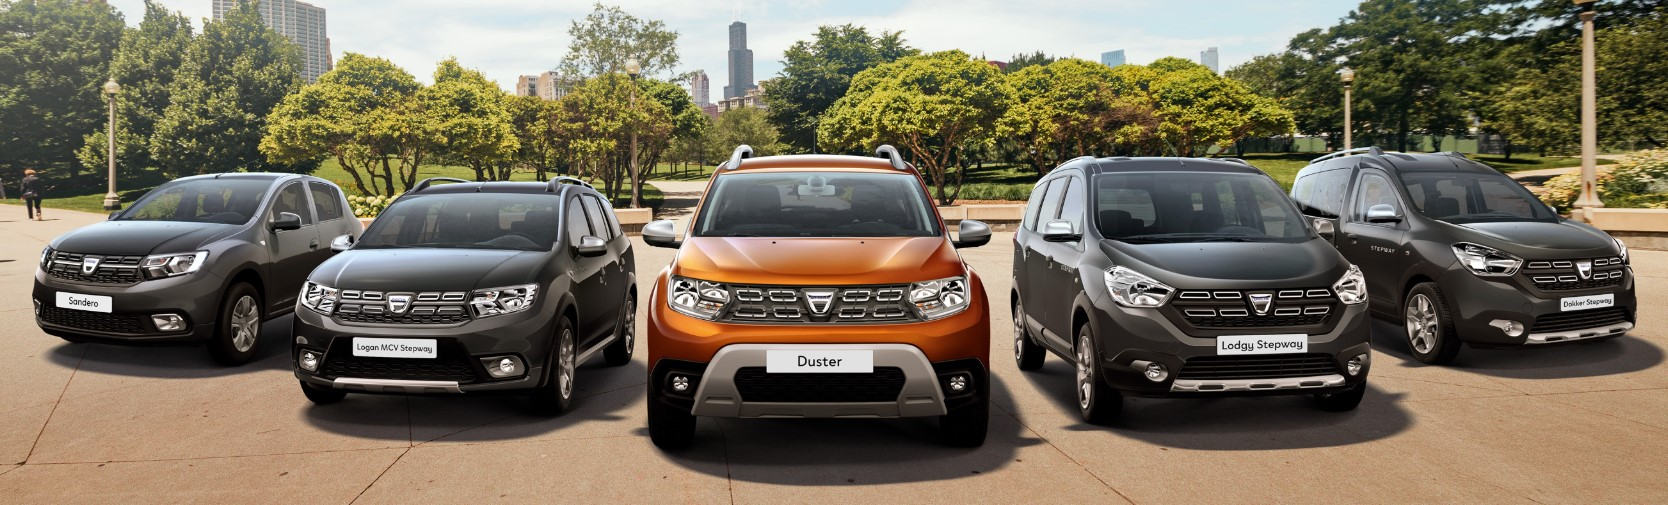 saloncodities dacia 2019